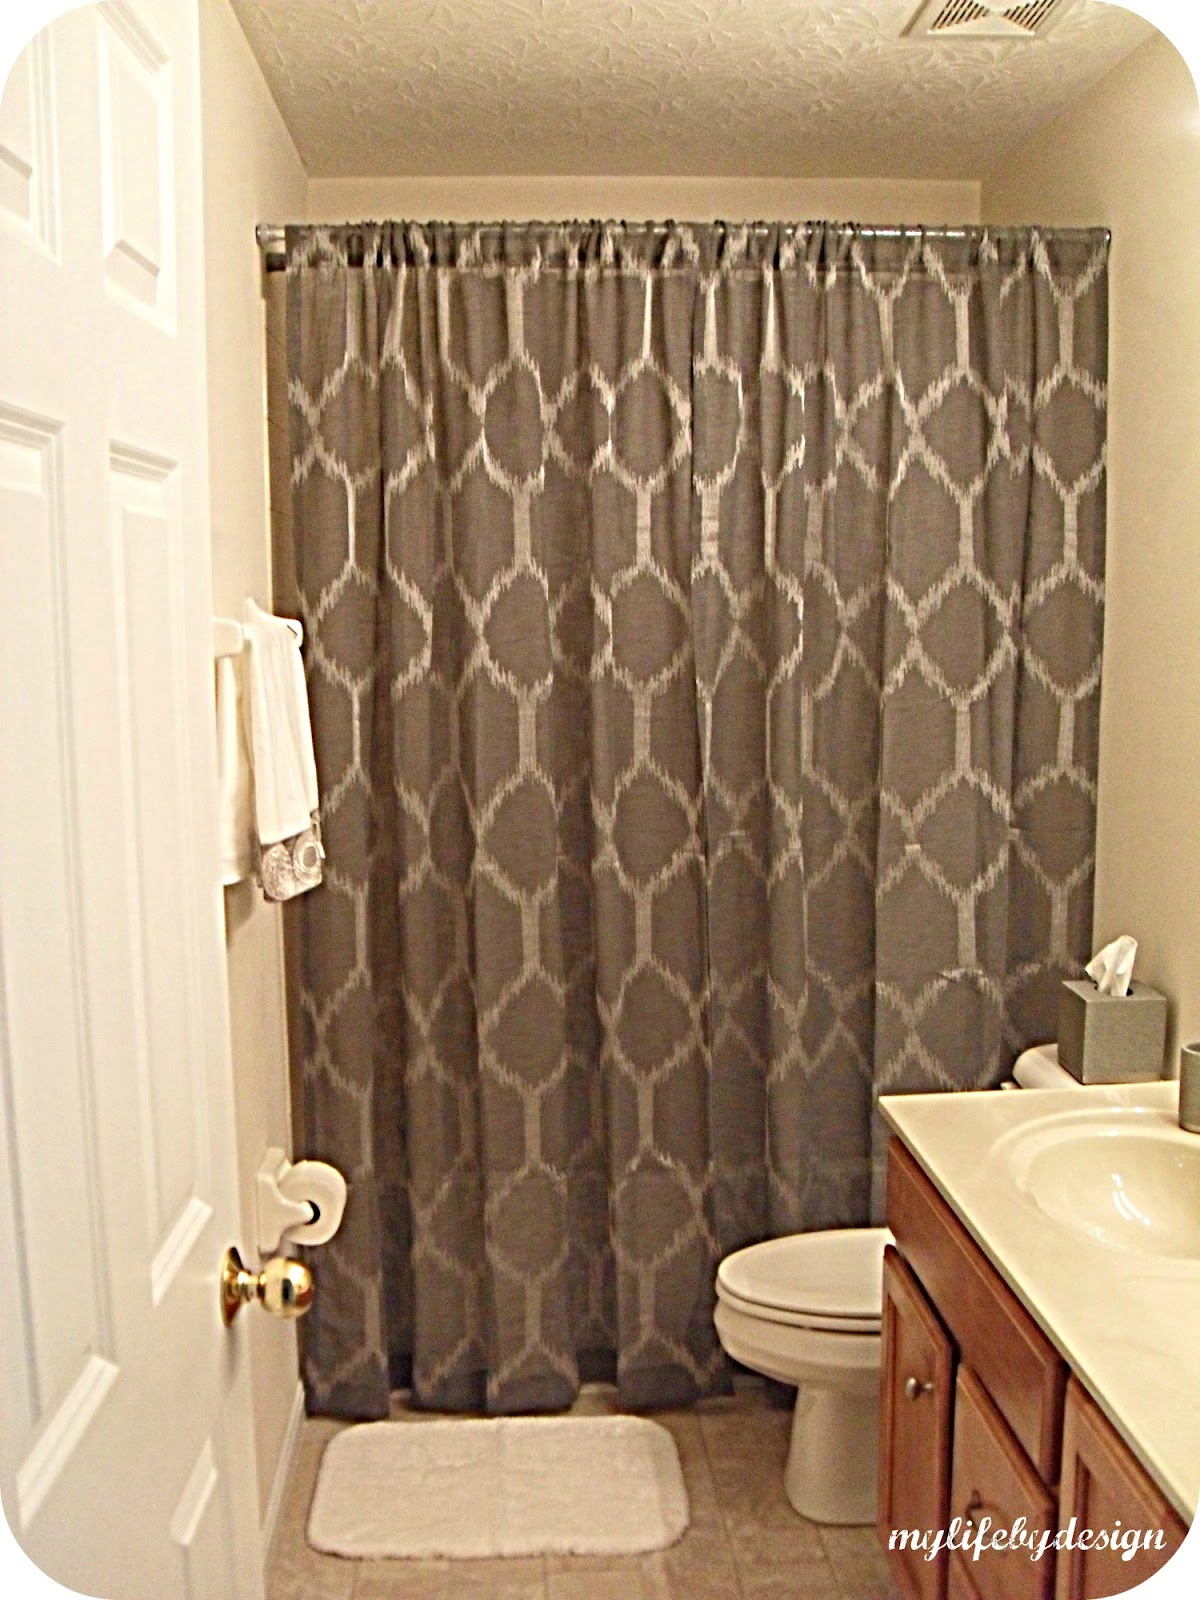 My life by design be our guest guest bathroom Bathroom shower curtain ideas